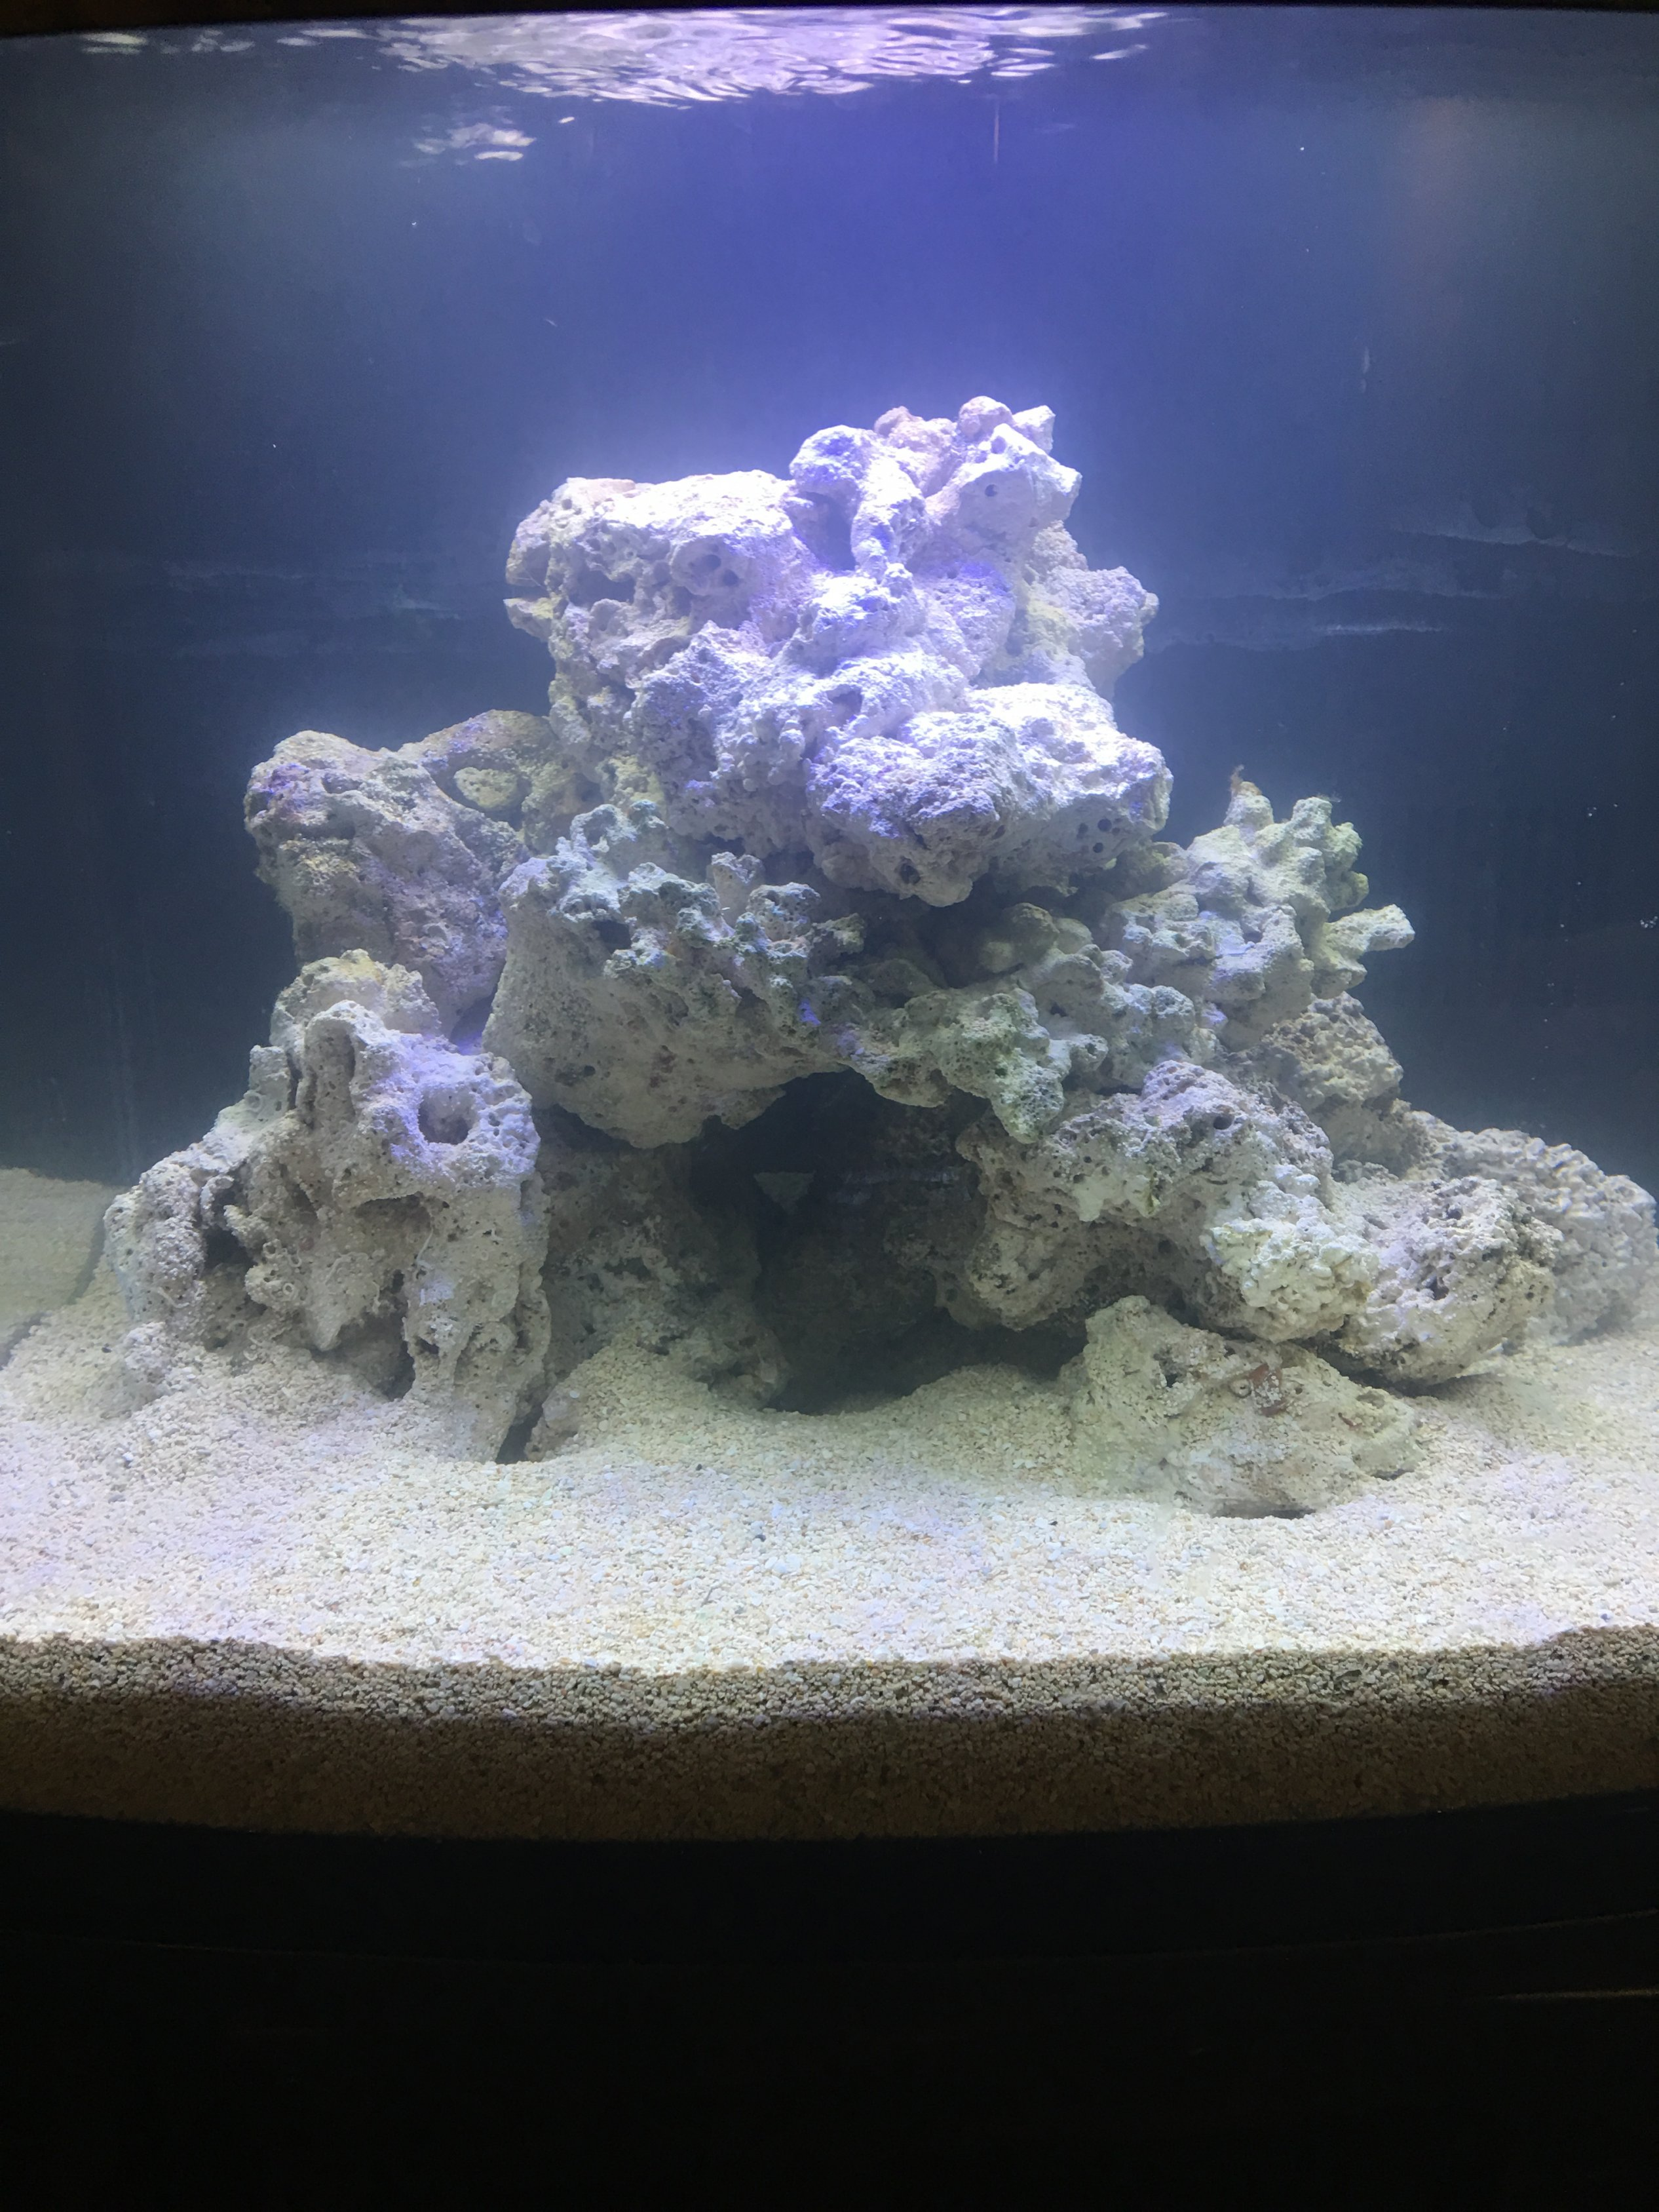 IMG_1040.JPG & Mounting a kessil a160 to 29 gallon biocube hood - Lighting Forum ...